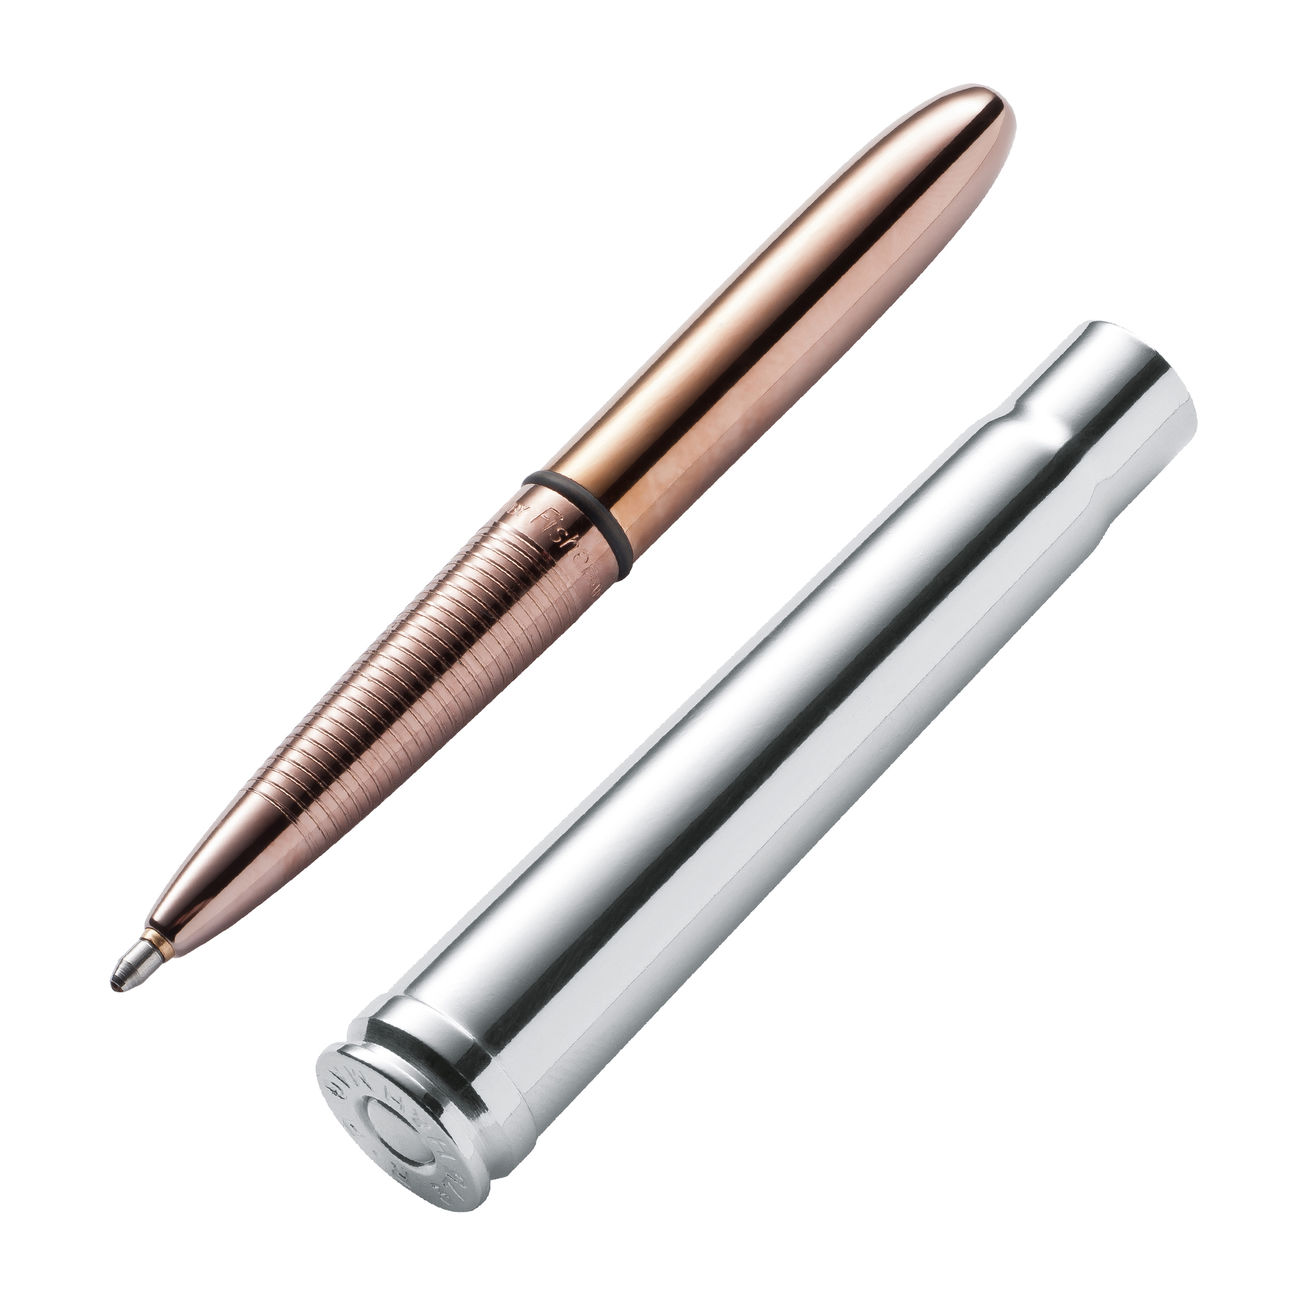 Fisher Patronenstift Space Pen 375 Holland Holland Günstig Kaufen